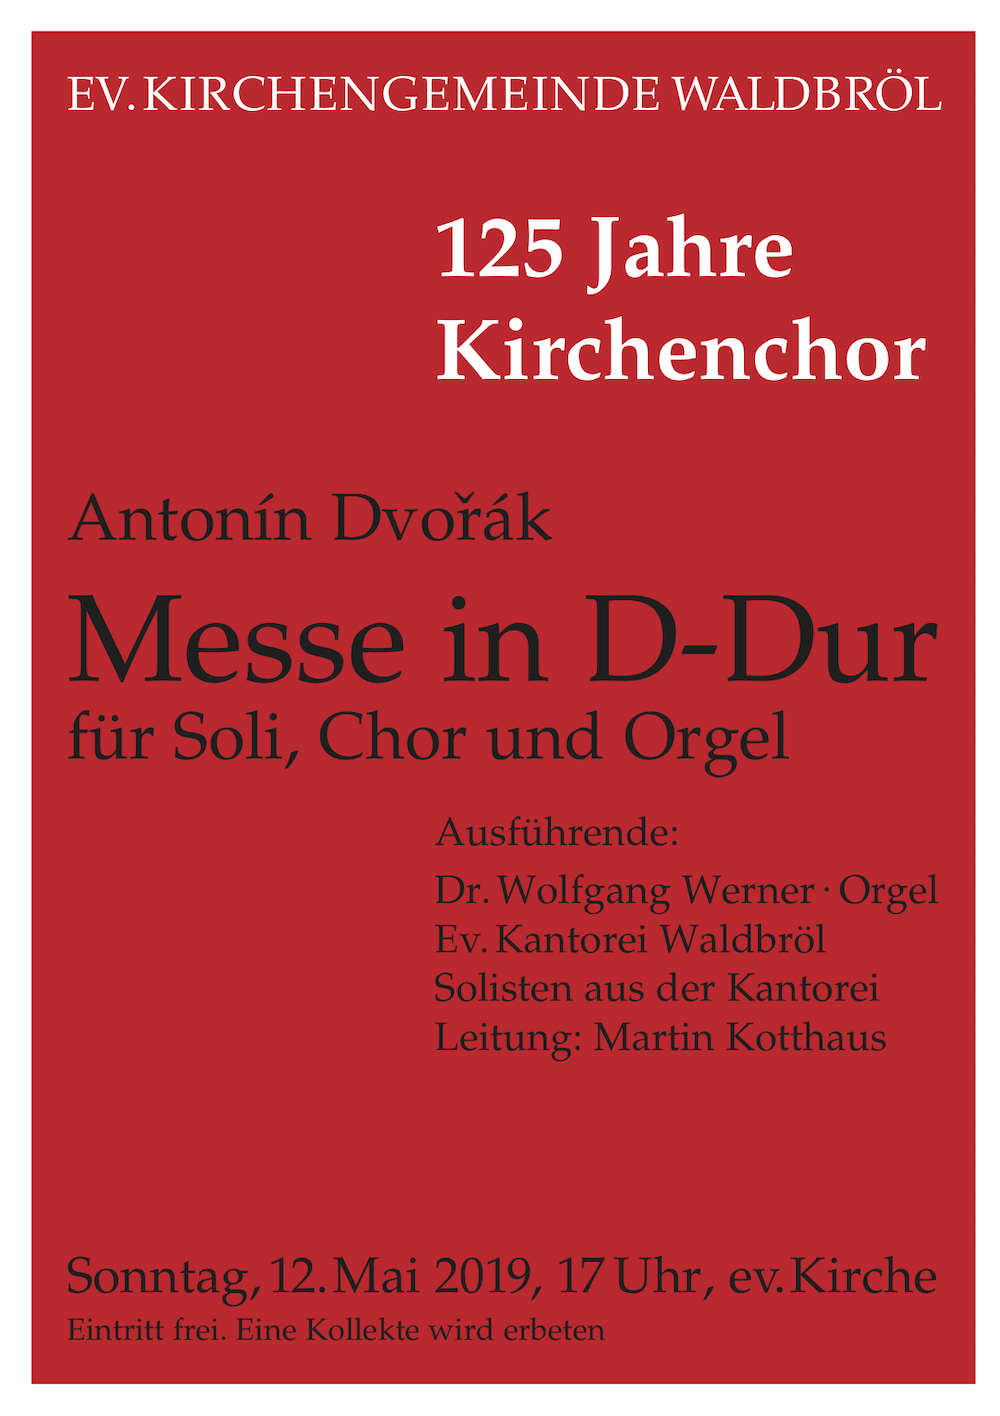 Messe in D-Dur am 12. Mai 2019